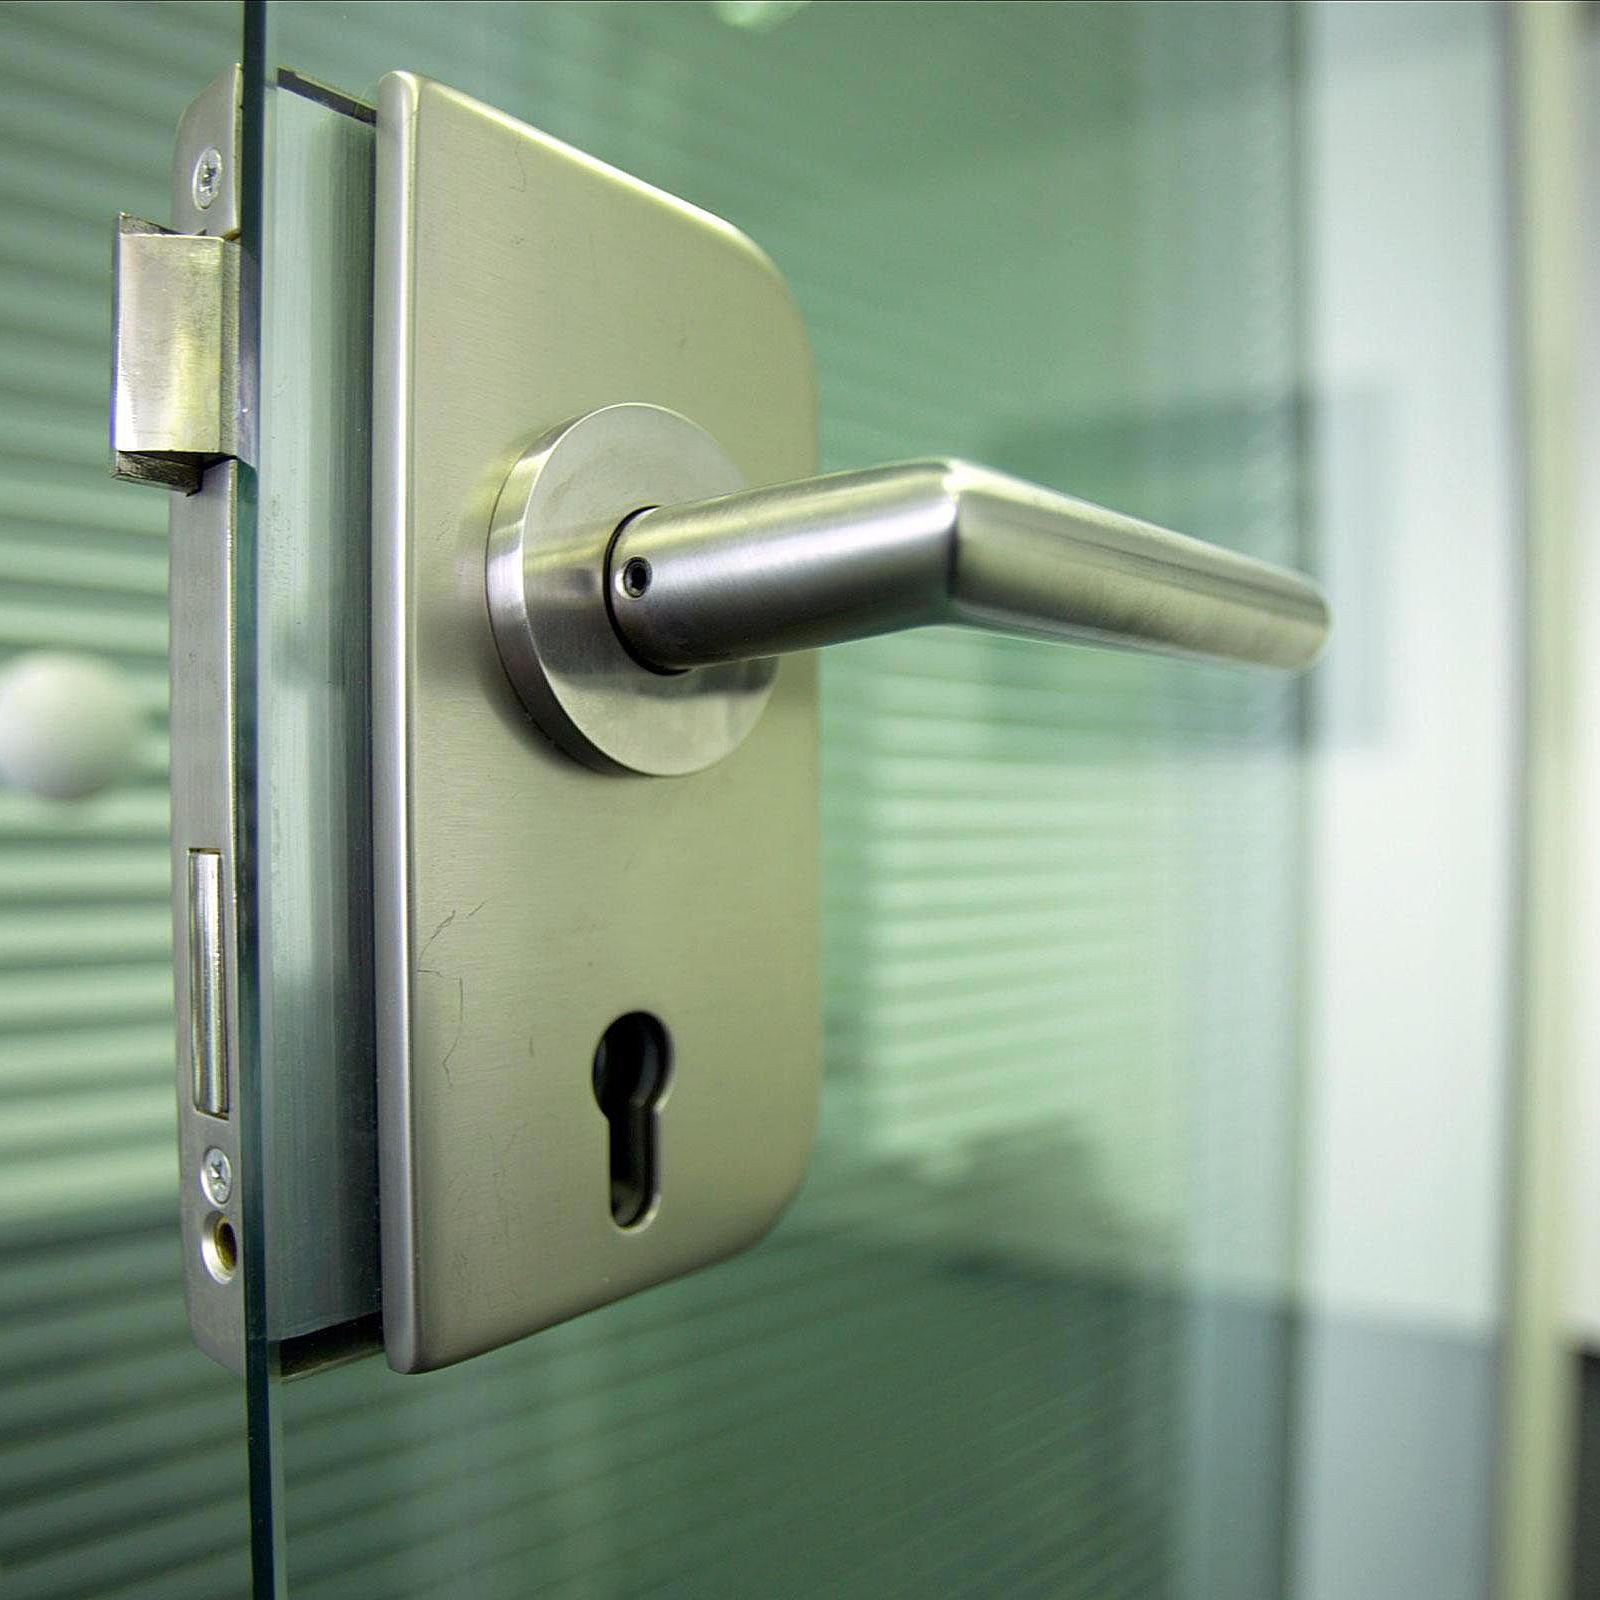 Bedroom Door Knobs with Locks Fresh How to Develop Effective Key Control Policies